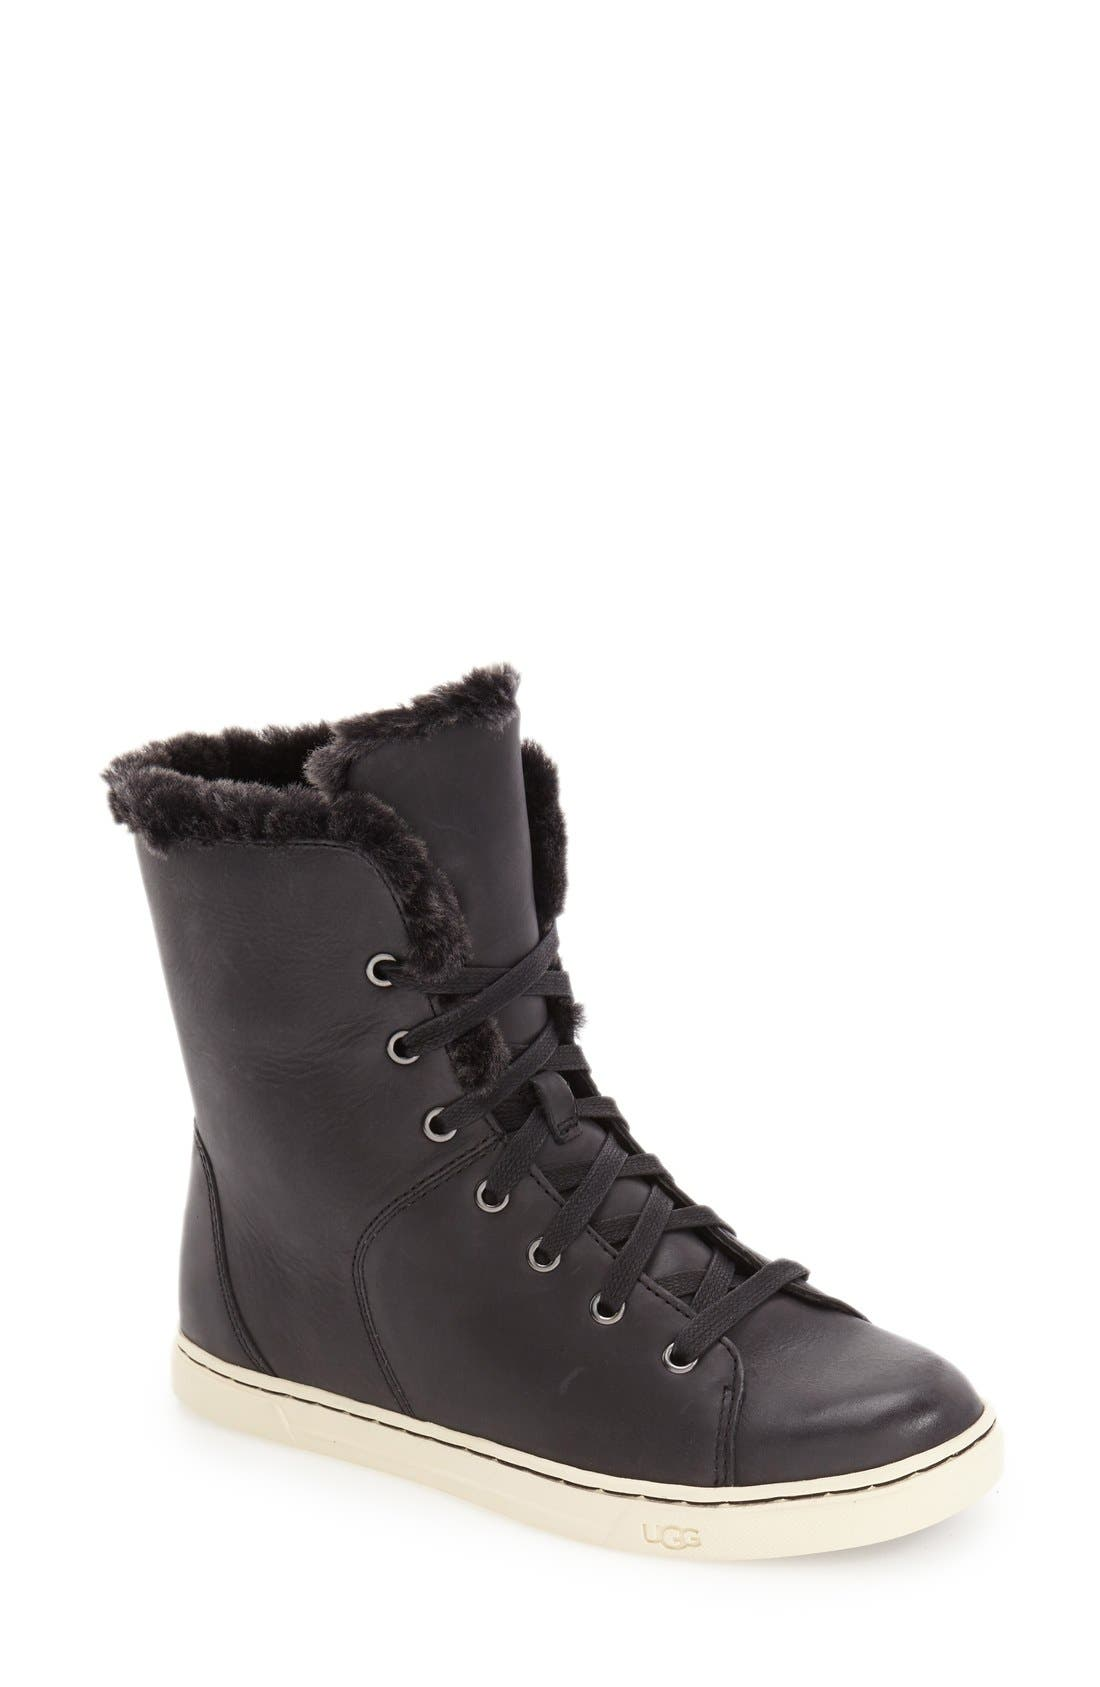 'Croft Luxe' Genuine Shearling High Top Sneaker,                             Main thumbnail 1, color,                             001